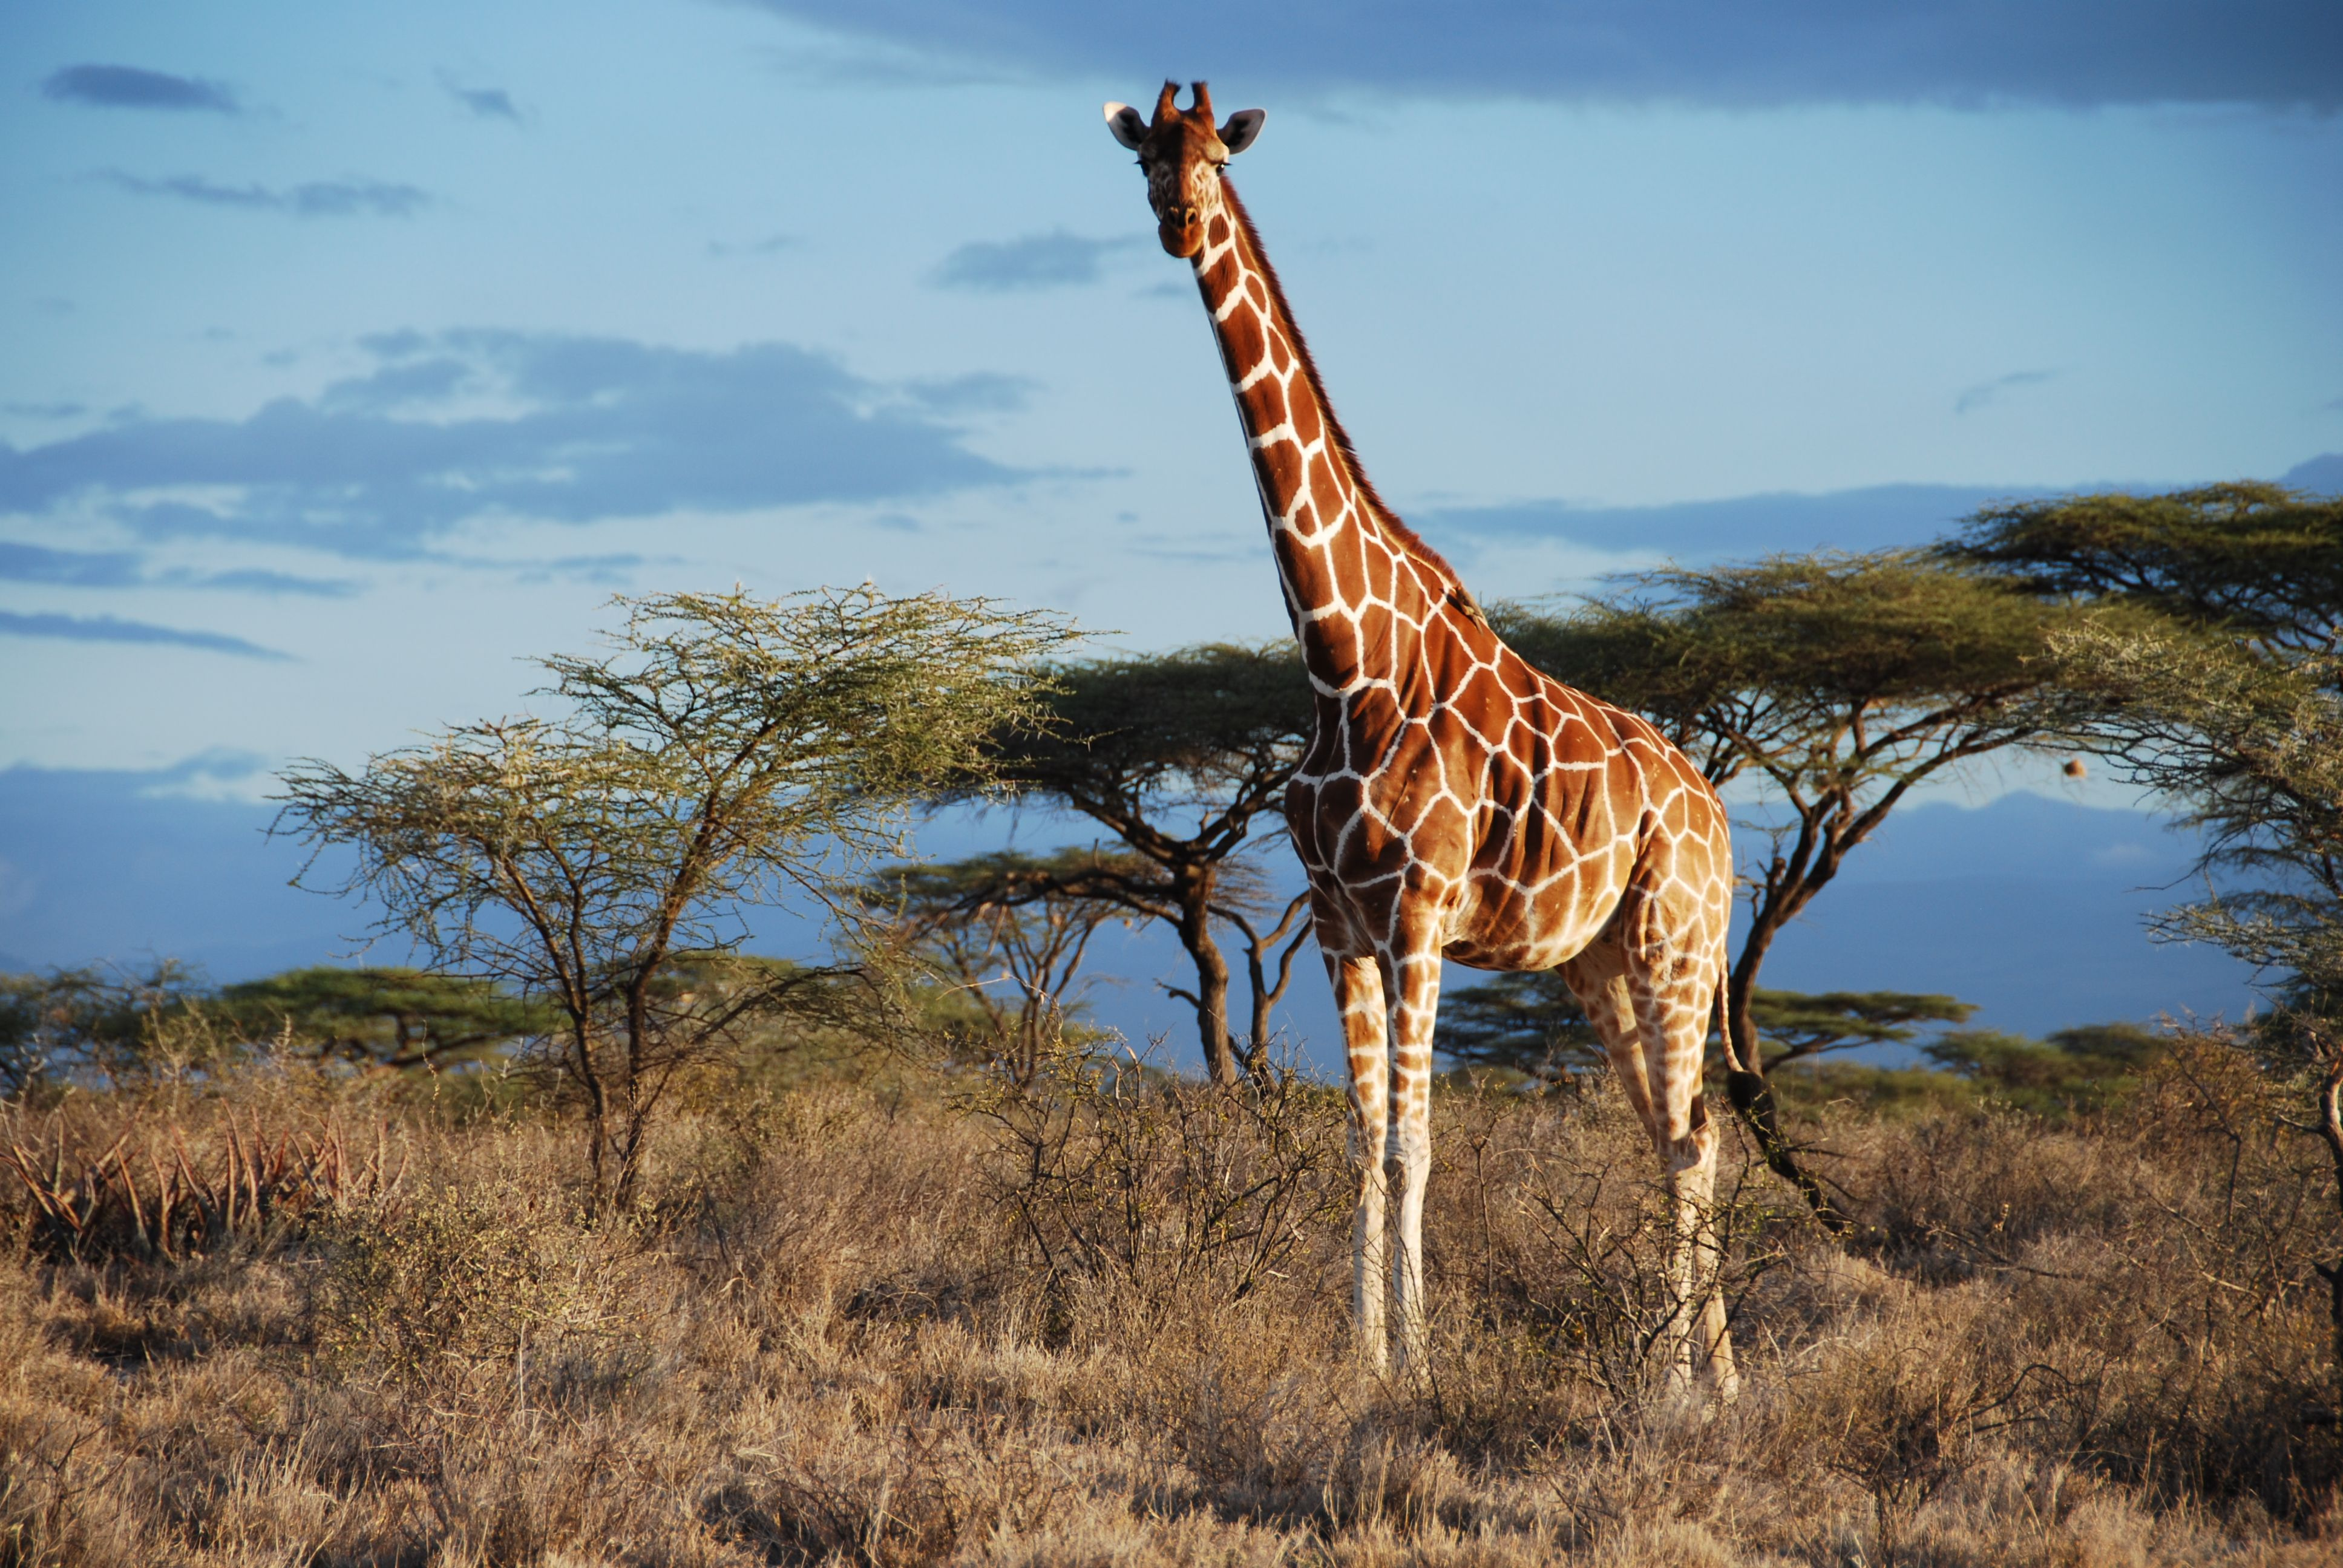 Giraffe Wallpapers Images Photos Pictures Backgrounds